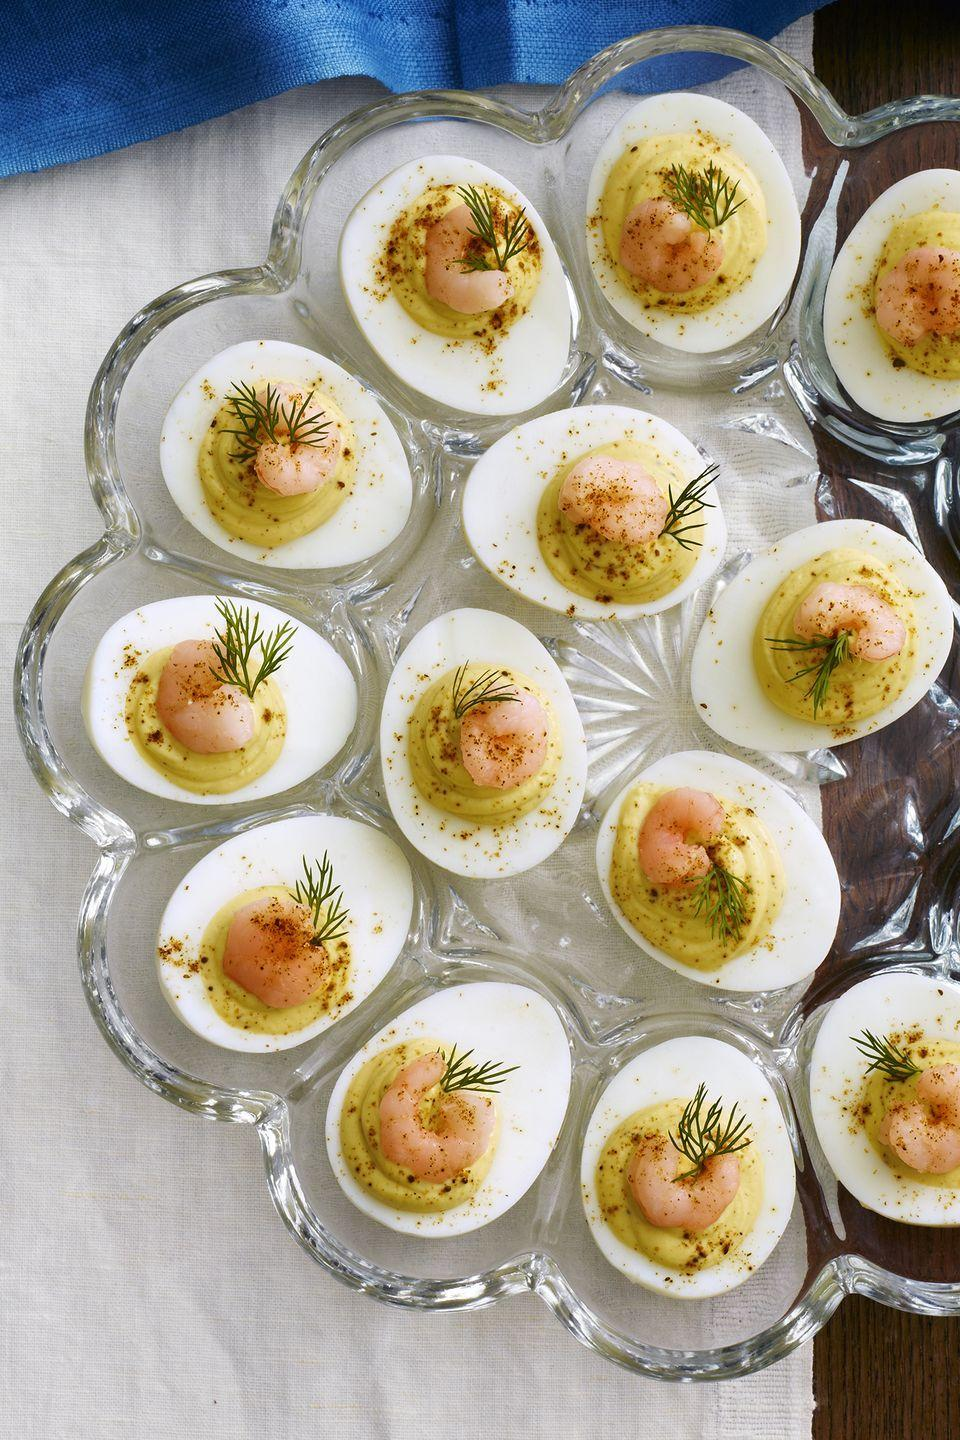 "<p>Just a dash of Old Bay seasoning gives these treats a ton of flavor. </p><p><strong><a href=""https://www.countryliving.com/food-drinks/recipes/a4975/deviled-eggs-old-bay-shrimp-recipe-clx0414/"" rel=""nofollow noopener"" target=""_blank"" data-ylk=""slk:Get the recipe"" class=""link rapid-noclick-resp"">Get the recipe</a>.</strong></p><p><a class=""link rapid-noclick-resp"" href=""https://www.amazon.com/Dash-Rapid-Egg-Cooker-Scrambled/dp/B00DDXWFY0/?tag=syn-yahoo-20&ascsubtag=%5Bartid%7C10050.g.35131635%5Bsrc%7Cyahoo-us"" rel=""nofollow noopener"" target=""_blank"" data-ylk=""slk:SHOP EGG COOKER"">SHOP EGG COOKER</a></p>"